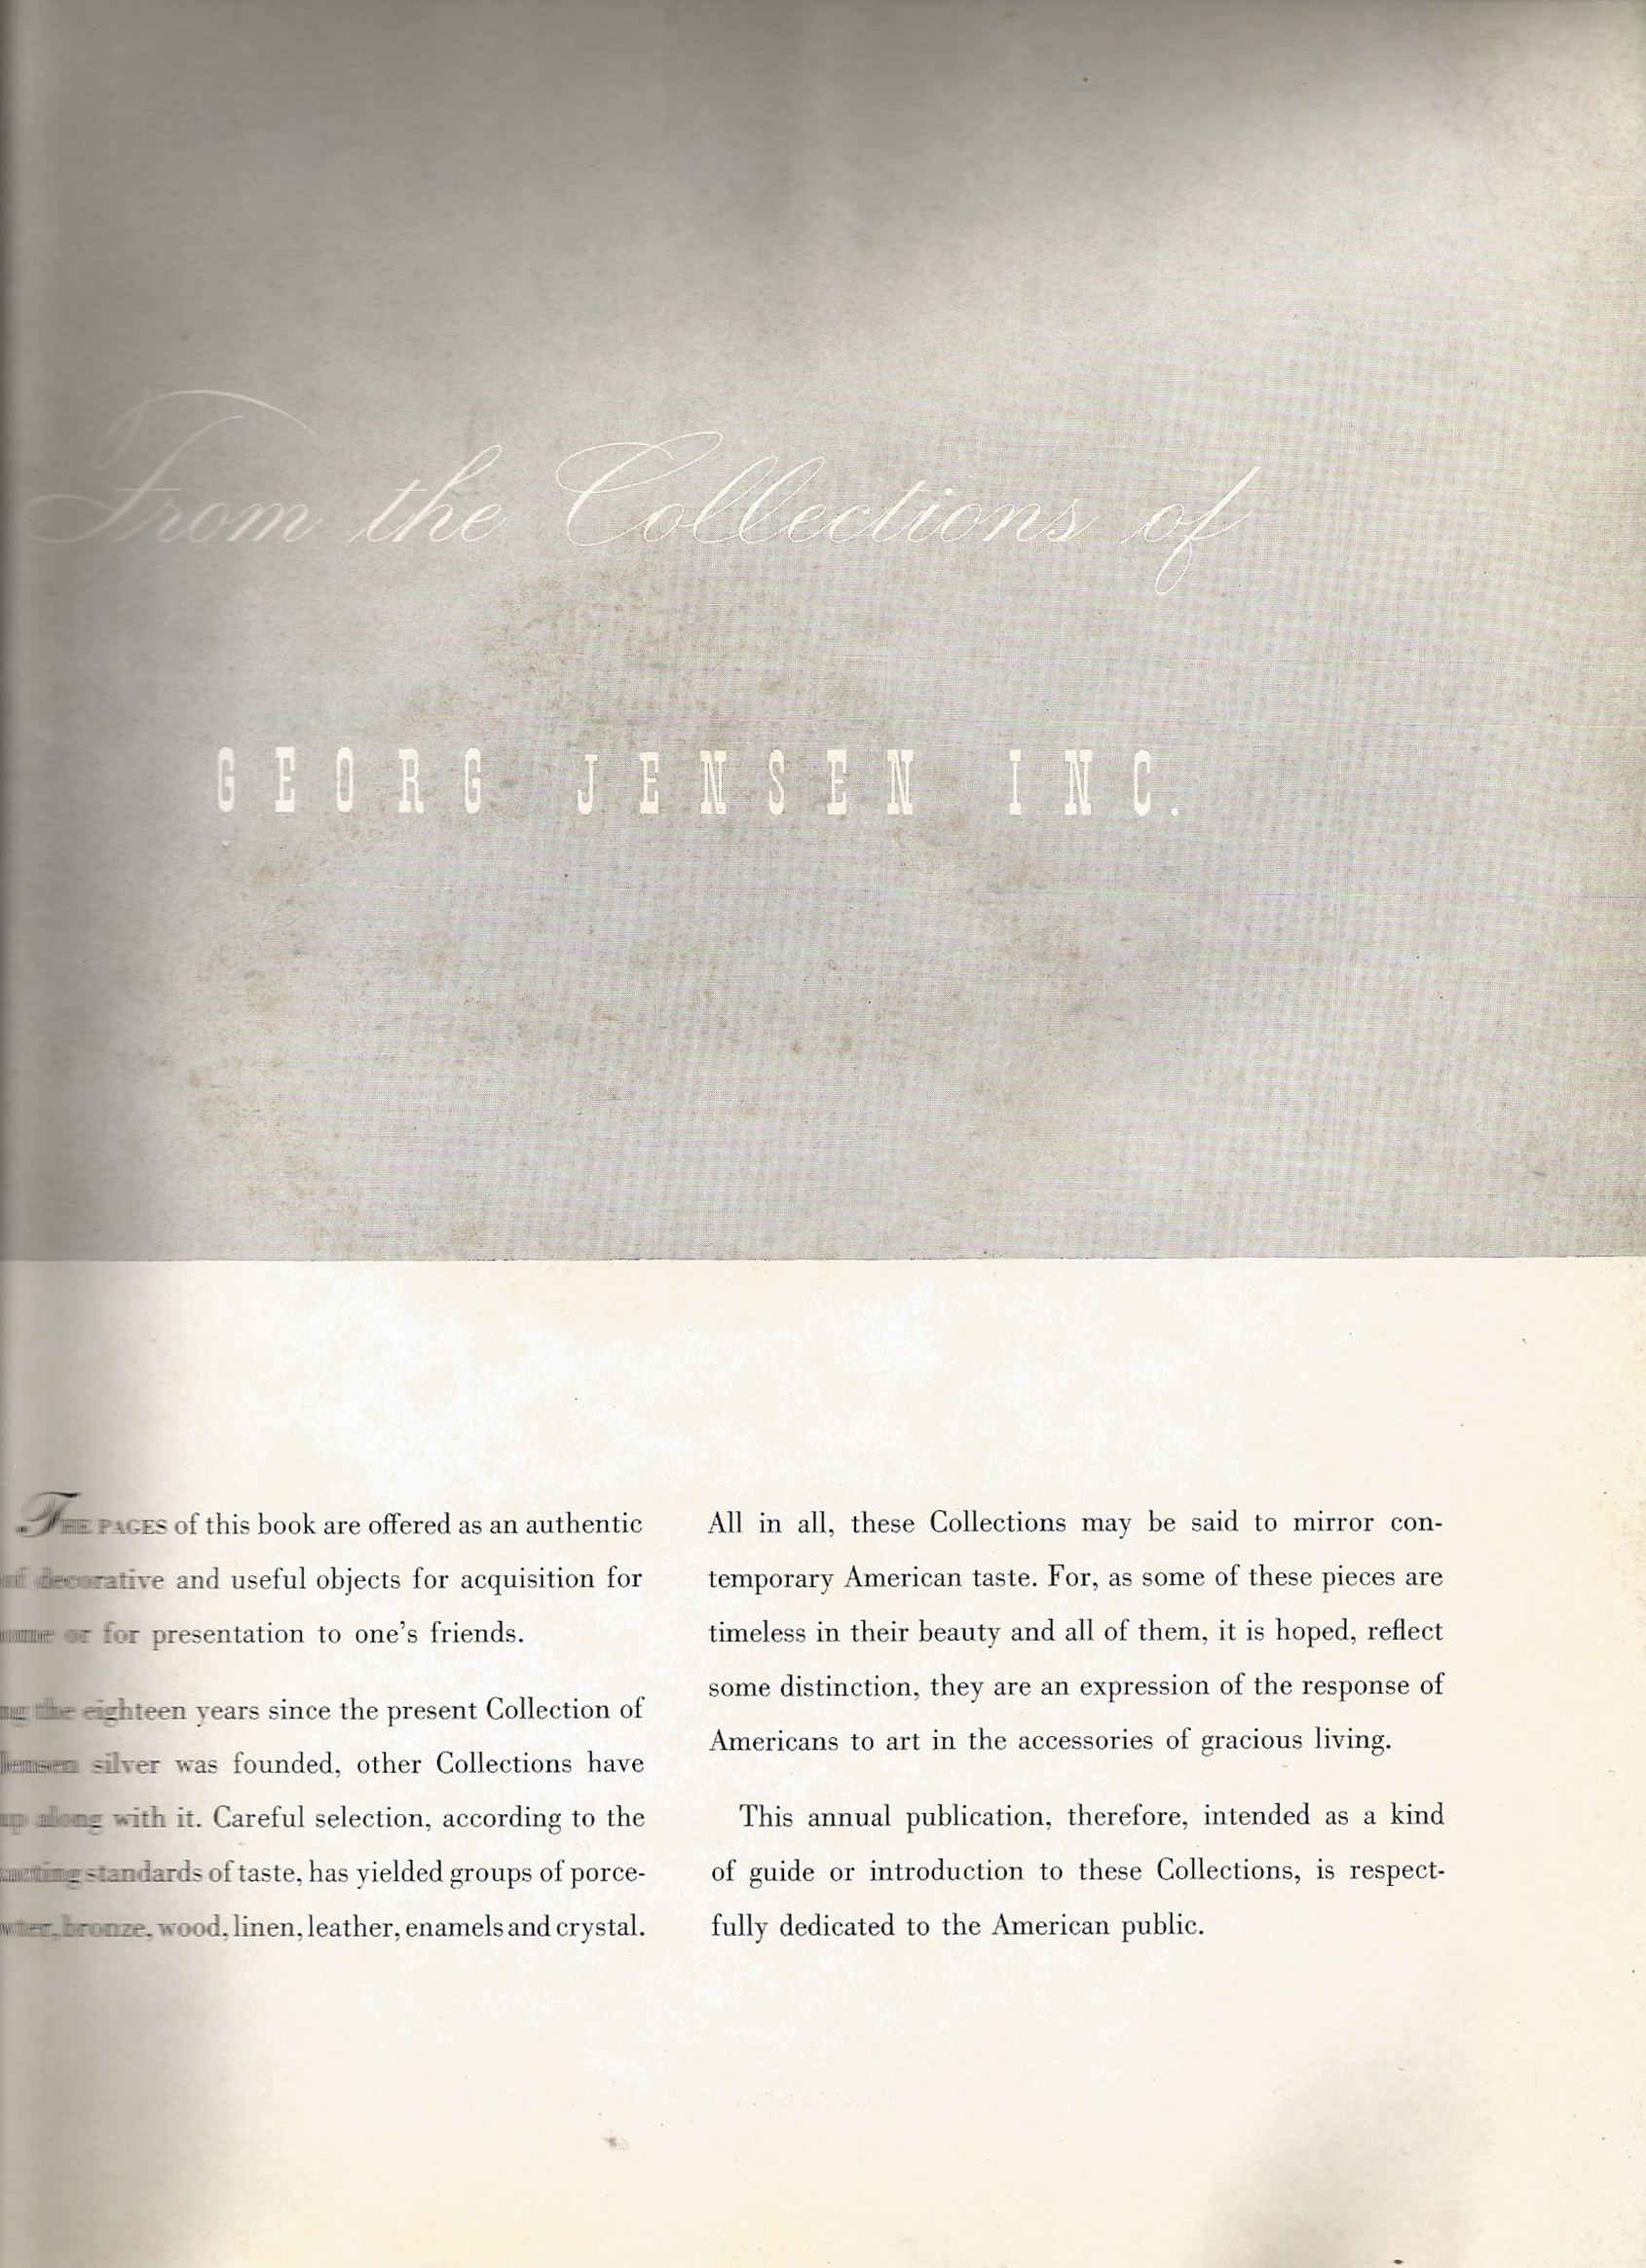 The text reads as: From the Collections of Georg Jensen Inc.  The paged of this book are offered as an authentic source of decorative and useful objects for the acquisition for one's home or for presentation to one's friends.  During the eighteen years since the present Collection of Georg Jensen silver was founded, other collections have grown up along with it. Careful selection, according to the same exacting standards of taste, has yielded groups of porcelain, pewter, bronze, wood, linen, leather, enamels and crystal.  All in all, these Collections may be said to mirror contemporary American taste. For, as some of these pieces are timeless in their beauty and all of them, it is hoped, reflect some distinction, they are an expression of the response of Americans to art in the accessories of gracious living.  This annual publication, therefore, intended as a kind of guide or introduction to these Collections, is respectfully dedicated to the American public.